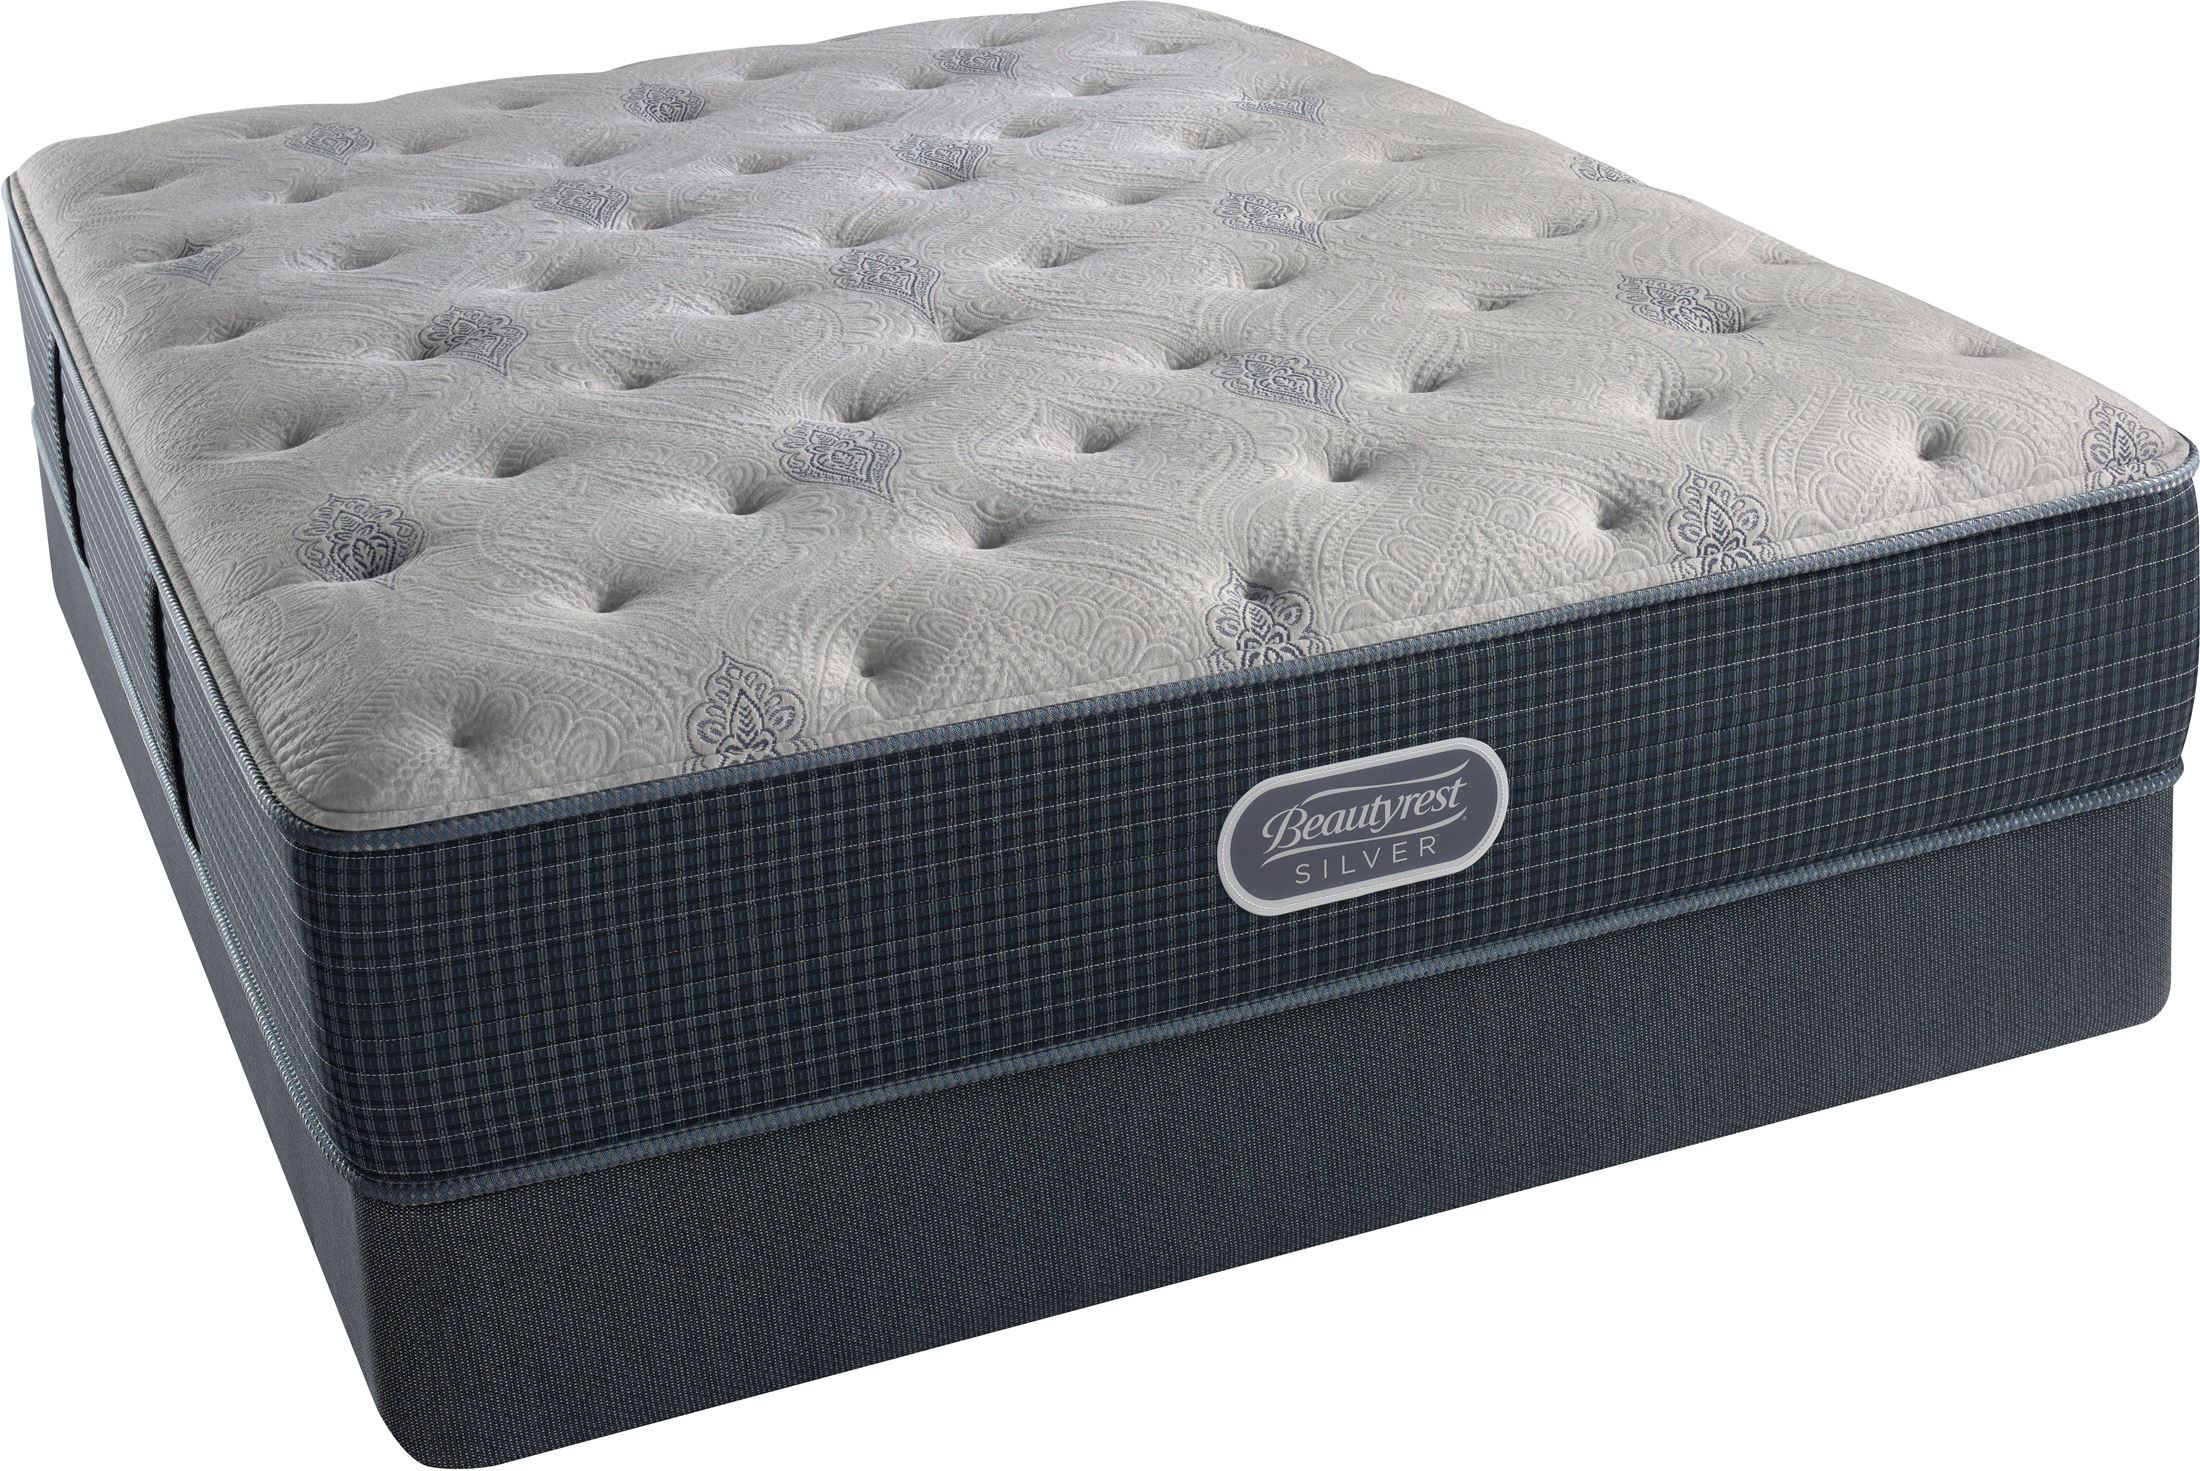 Beautyrest Recharge Silver Comfort Gray Tight Top Plush